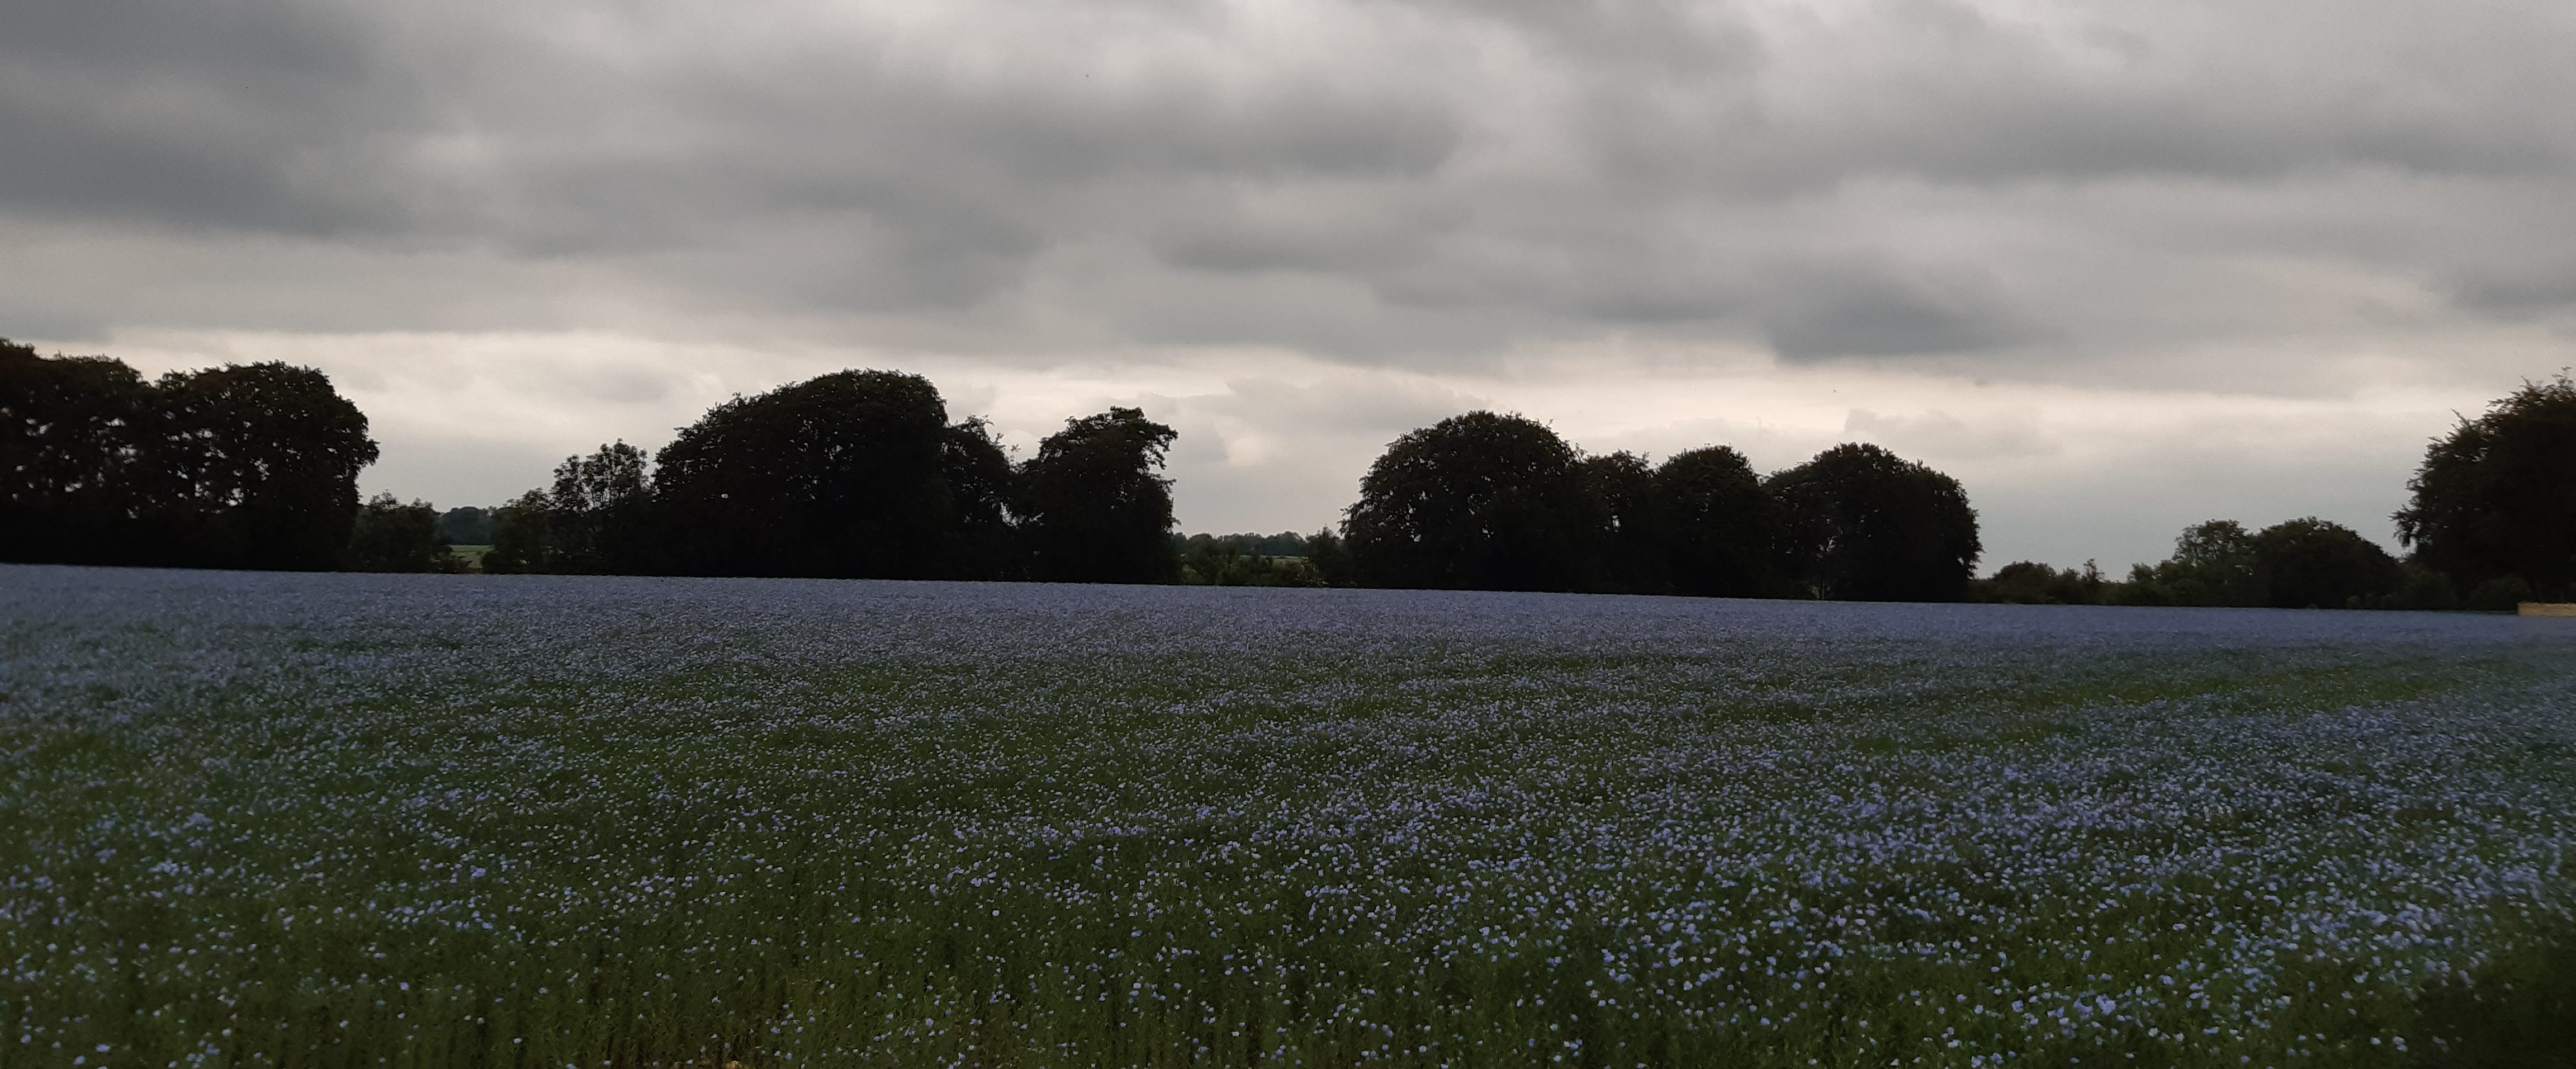 photo of flax field from afar